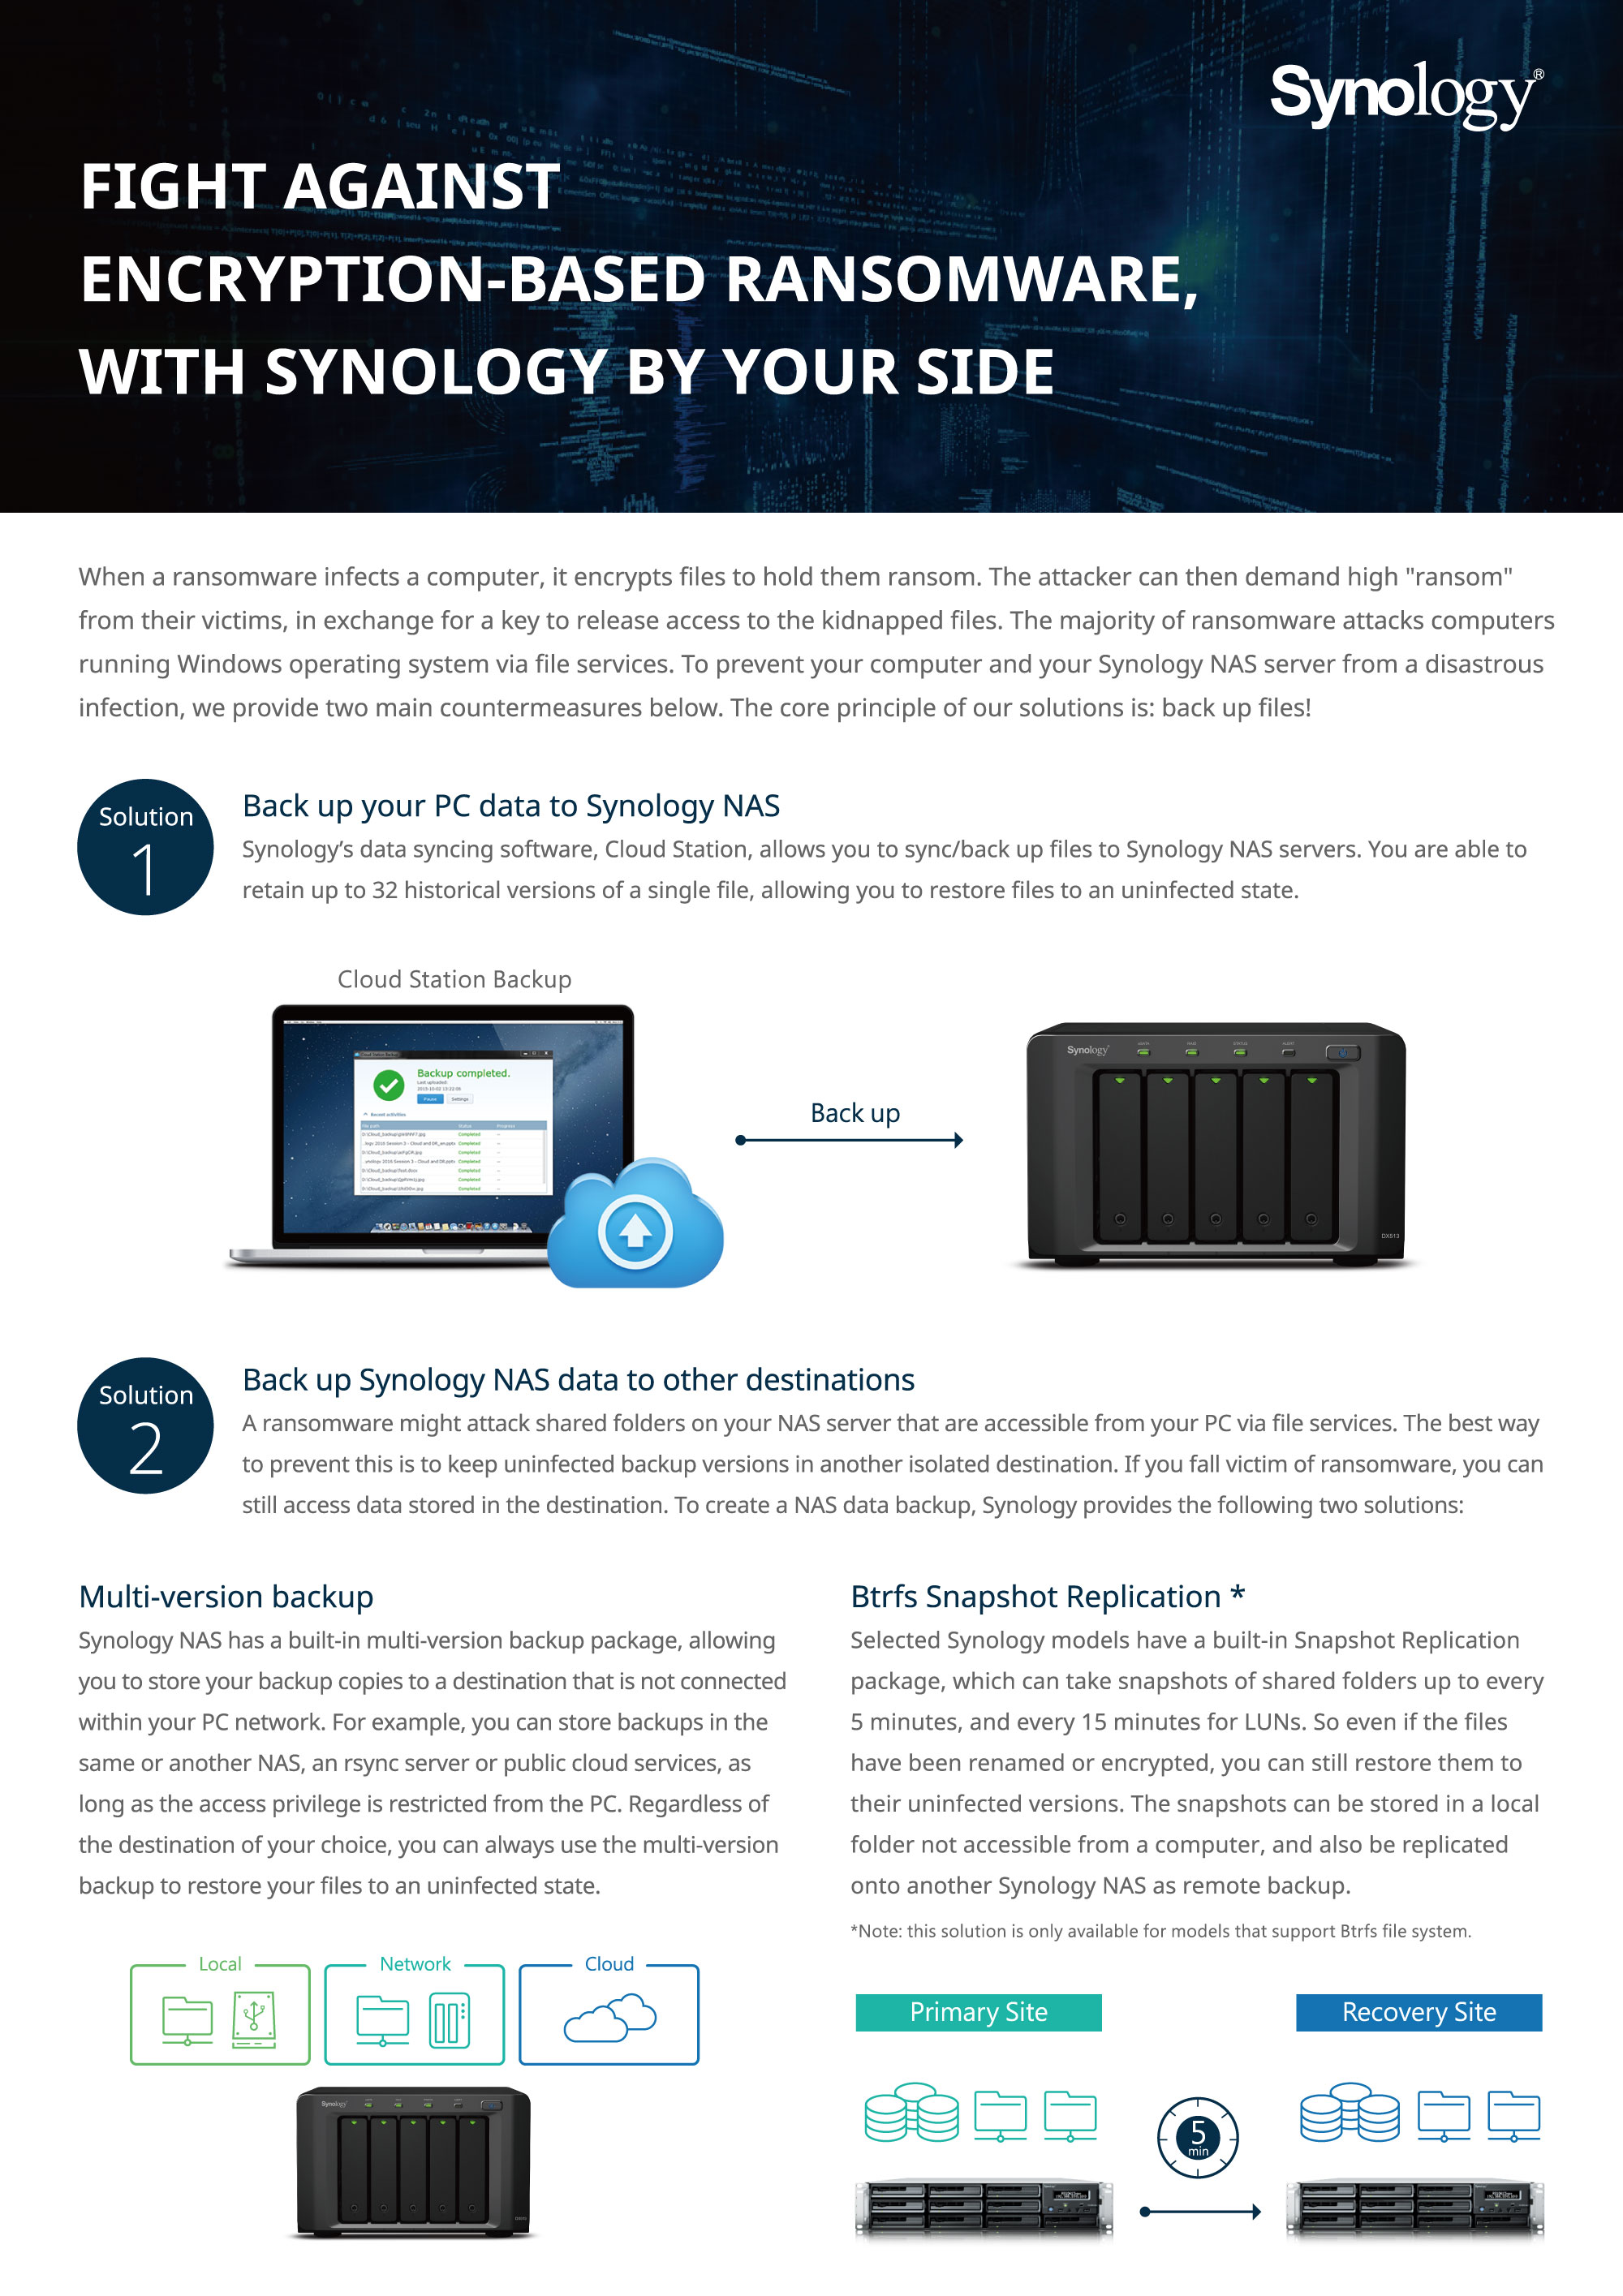 Synology: Protection Against Ransomware - ACE Peripherals